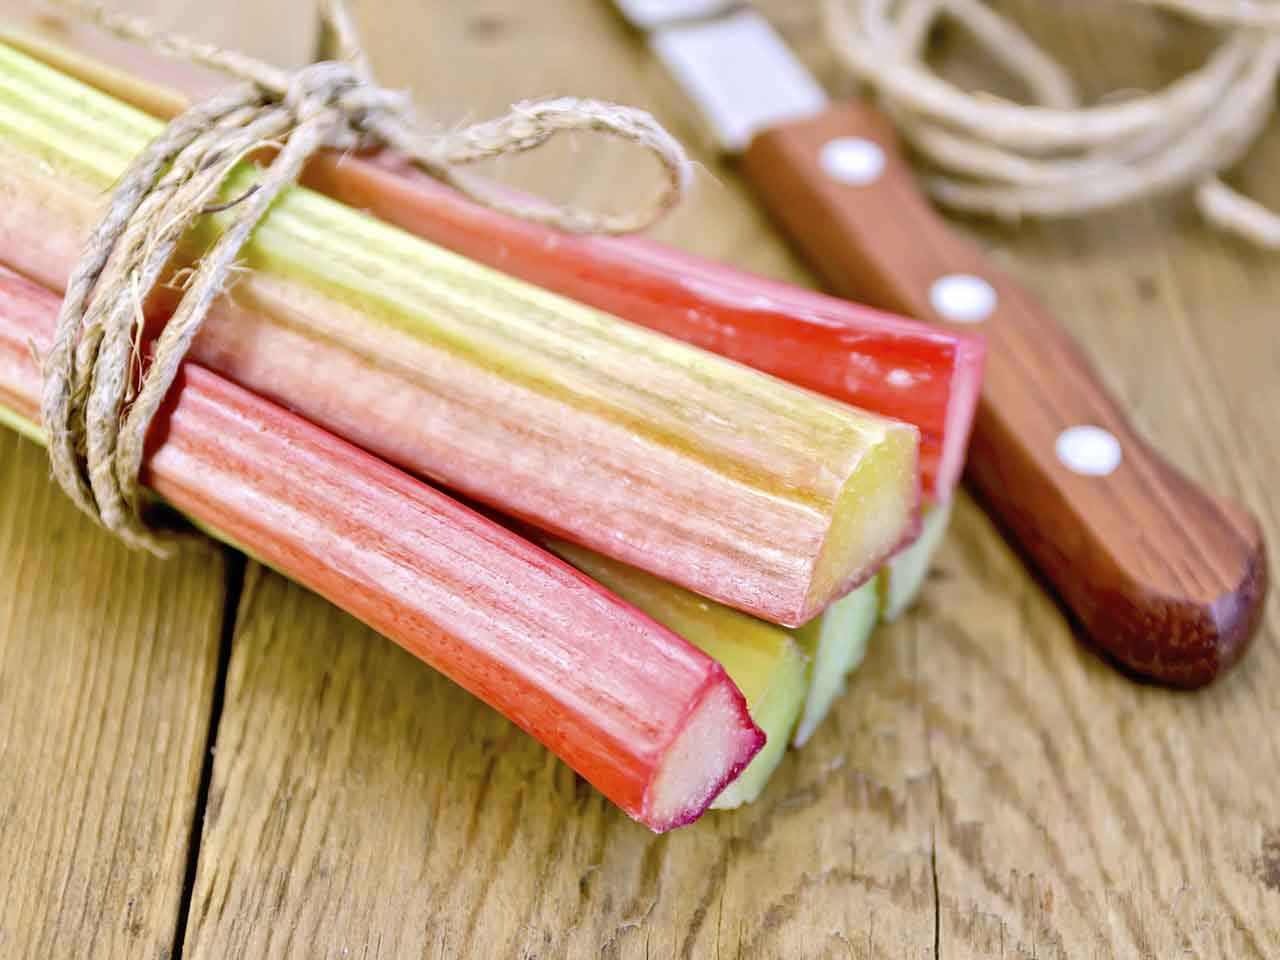 Rhubarb on chopping board